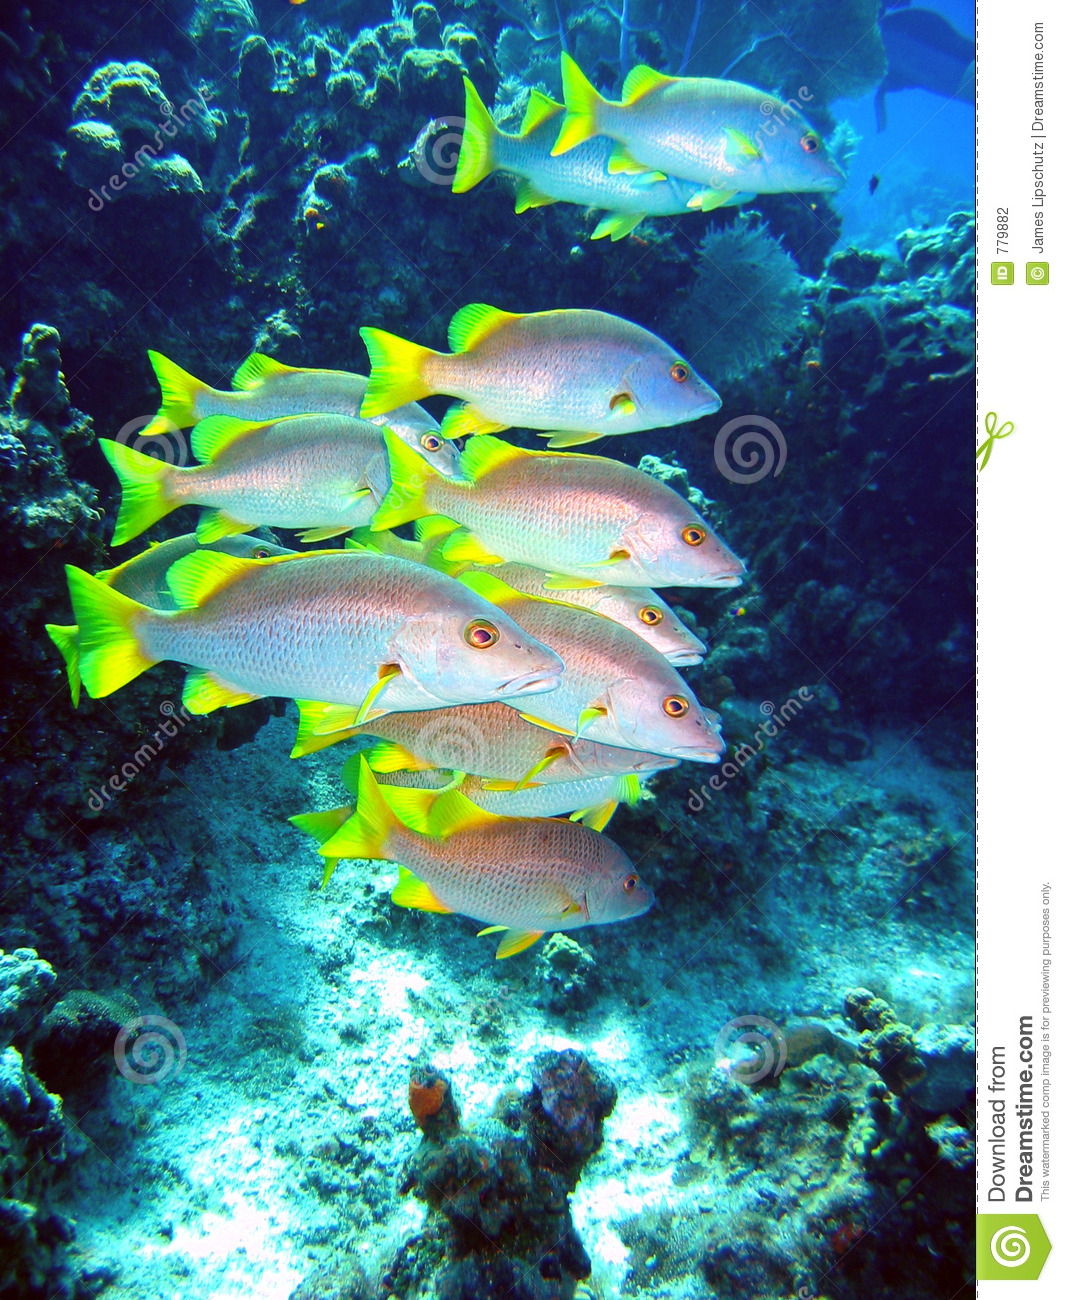 Schoolmaster fish swimming stock photo image of water for Dream of fish swimming